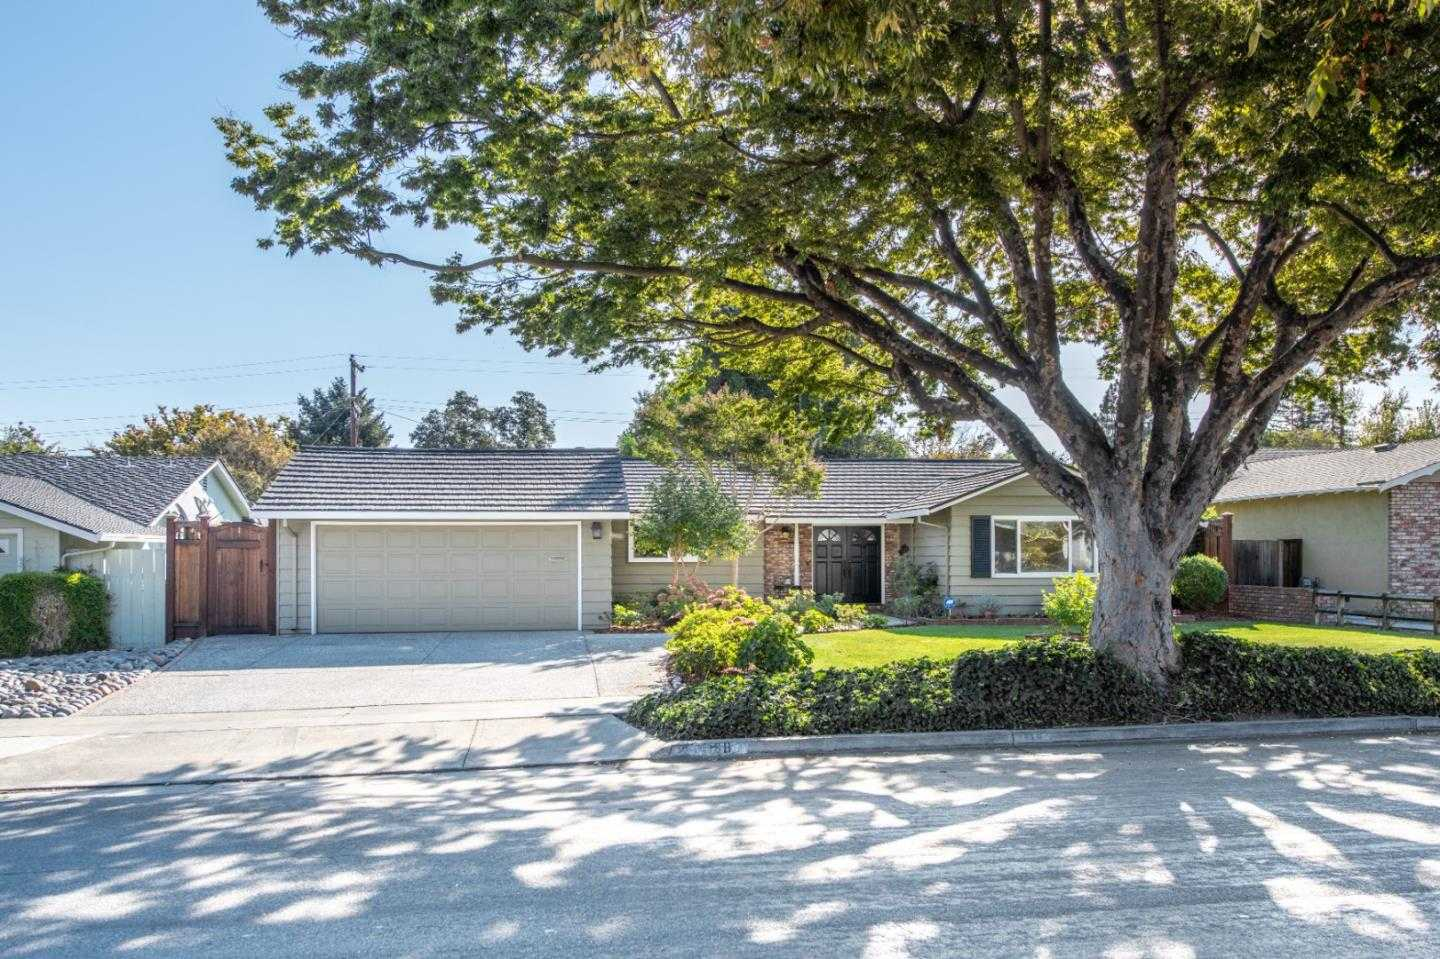 $2,098,000 - 5Br/3Ba -  for Sale in San Jose